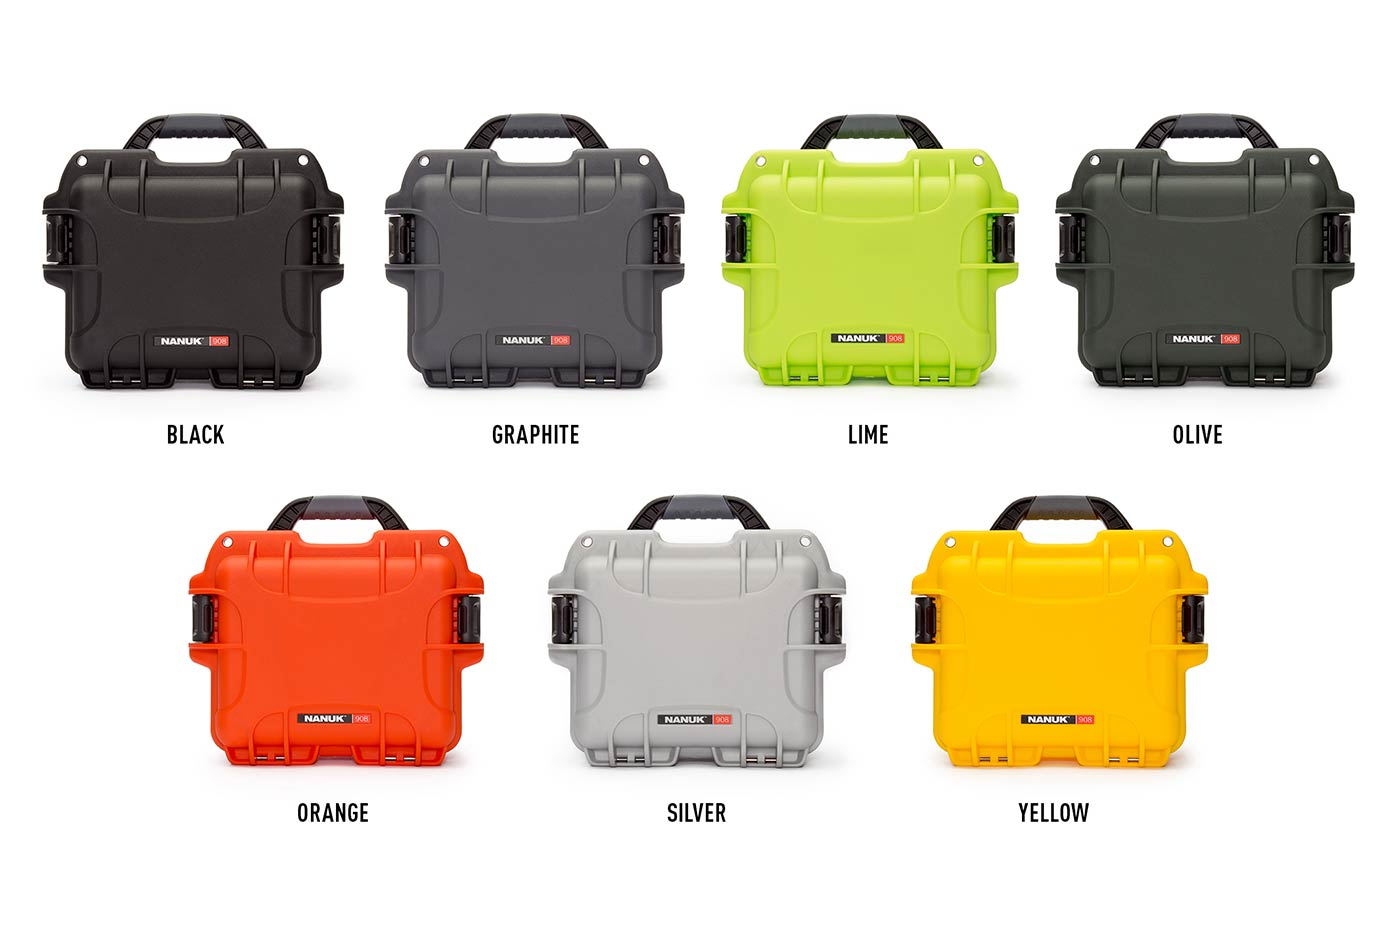 Nanuk 908 is available in 7 colors